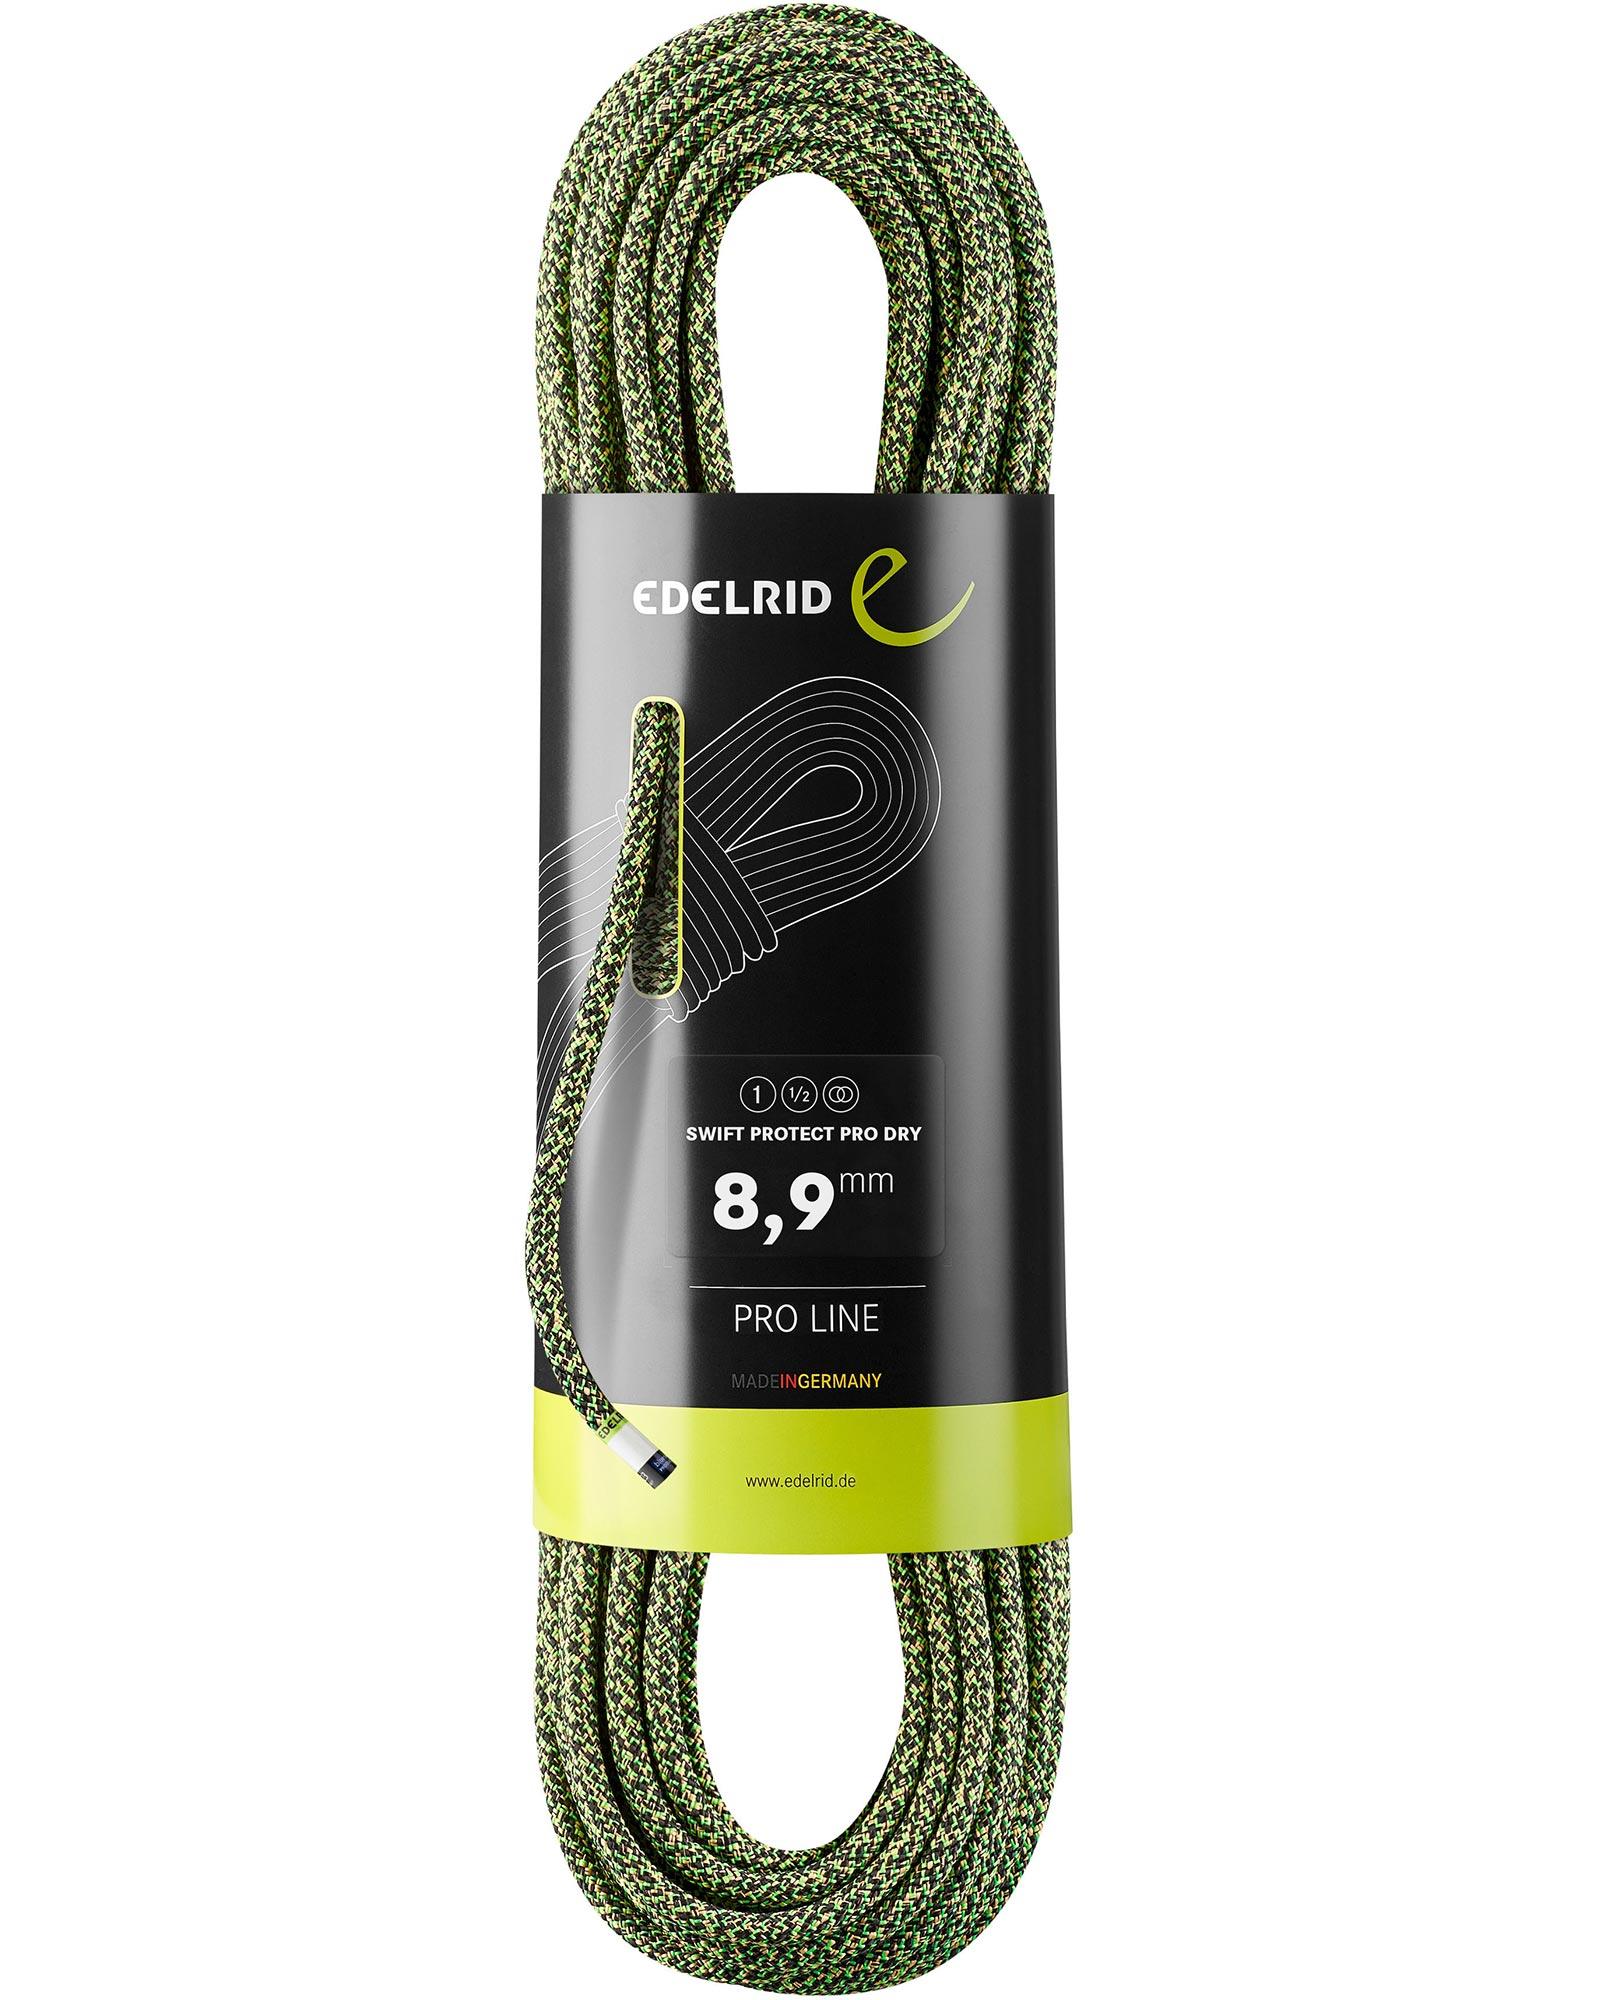 Edelrid Swift Protect Pro Dry 8.9mm x 70m Rope 0